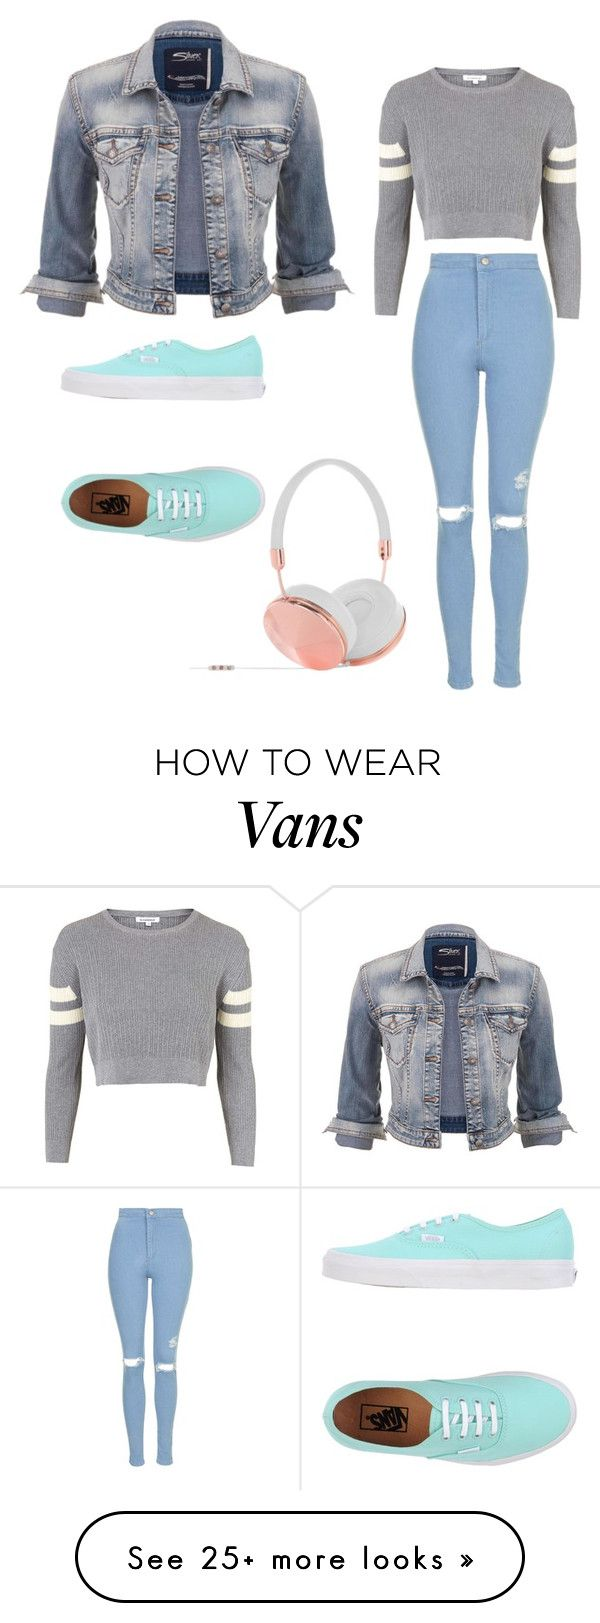 """""""Untitled #106"""" by dem123 on Polyvore featuring Frends, Vans, maurices, Topshop, women's clothing, women's fashion, women, female, woman and misses"""